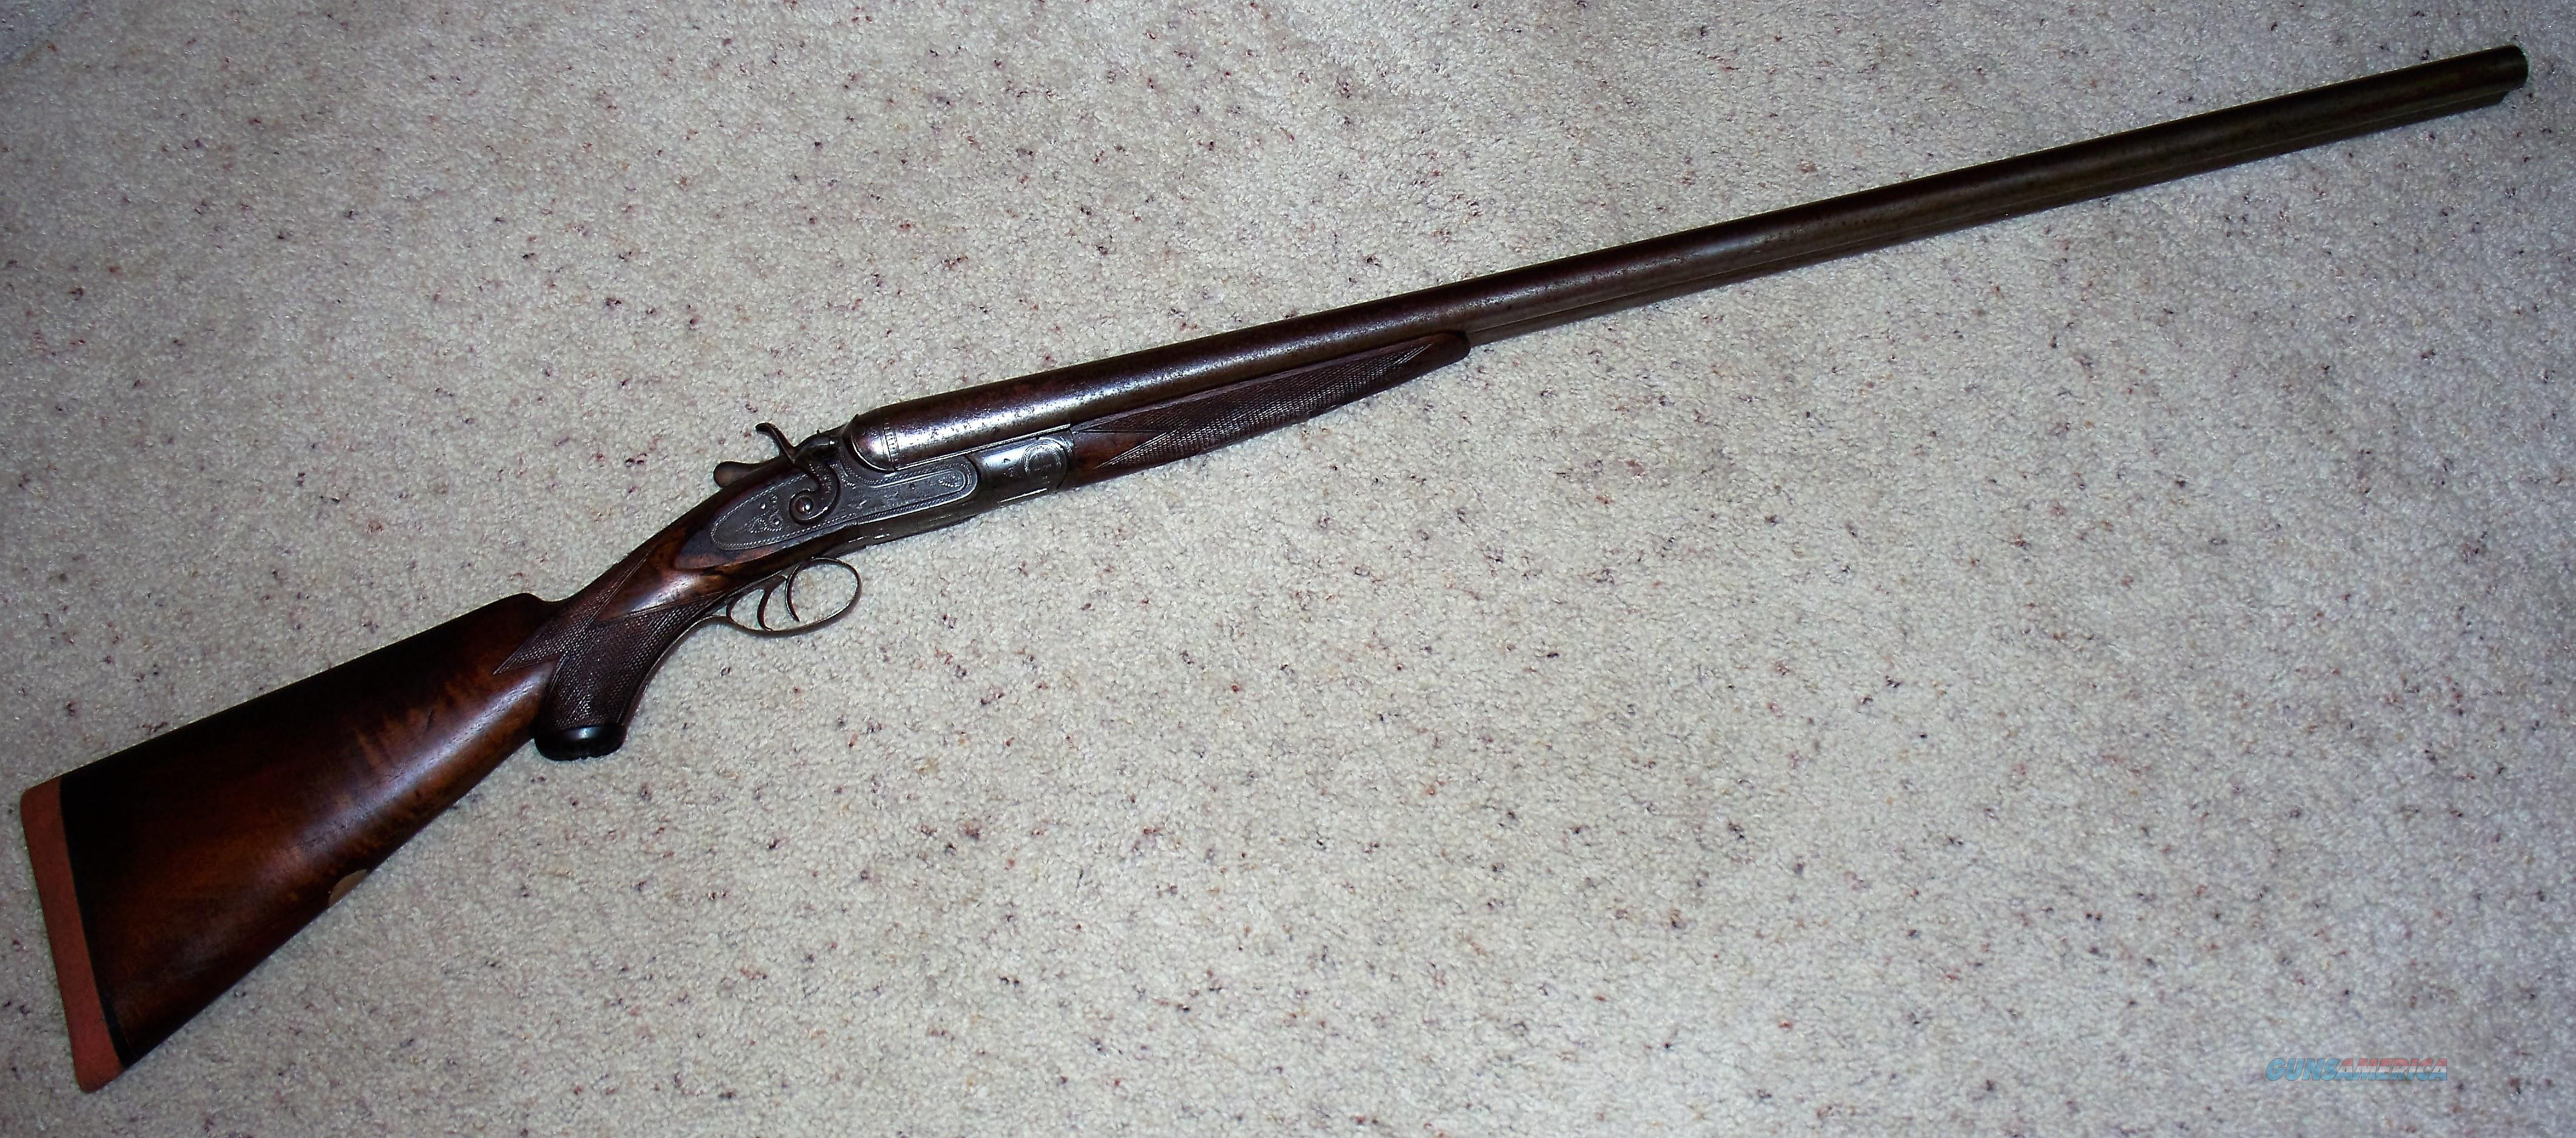 W. Richards English Made 8 Gauge Double Barrel Shotgun - ANTIQUE  Guns > Shotguns > R Misc Shotguns